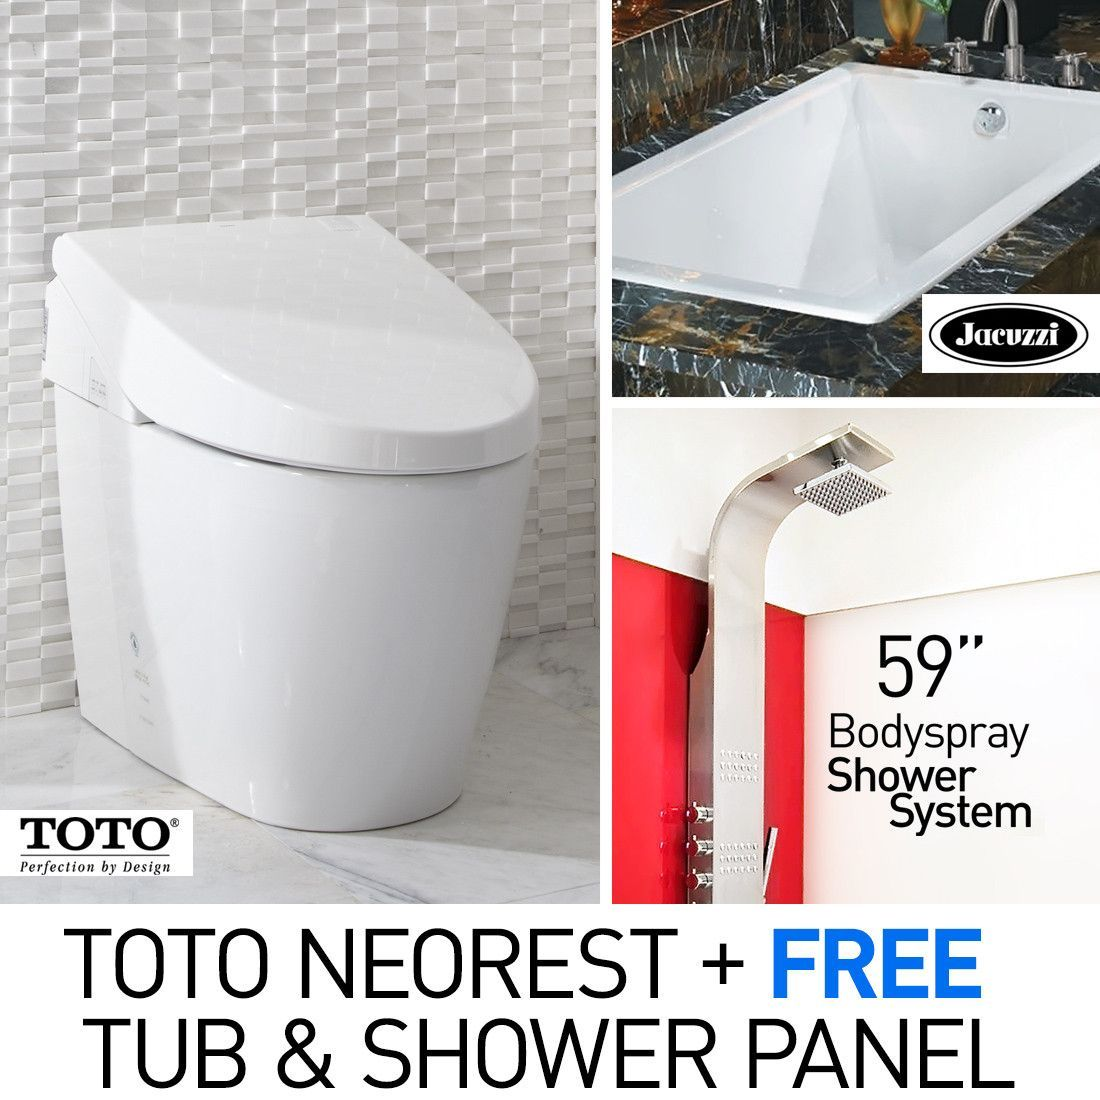 TOTO MS982CUMG Neorest 550H Toilet with Jacuzzi Elara 72\